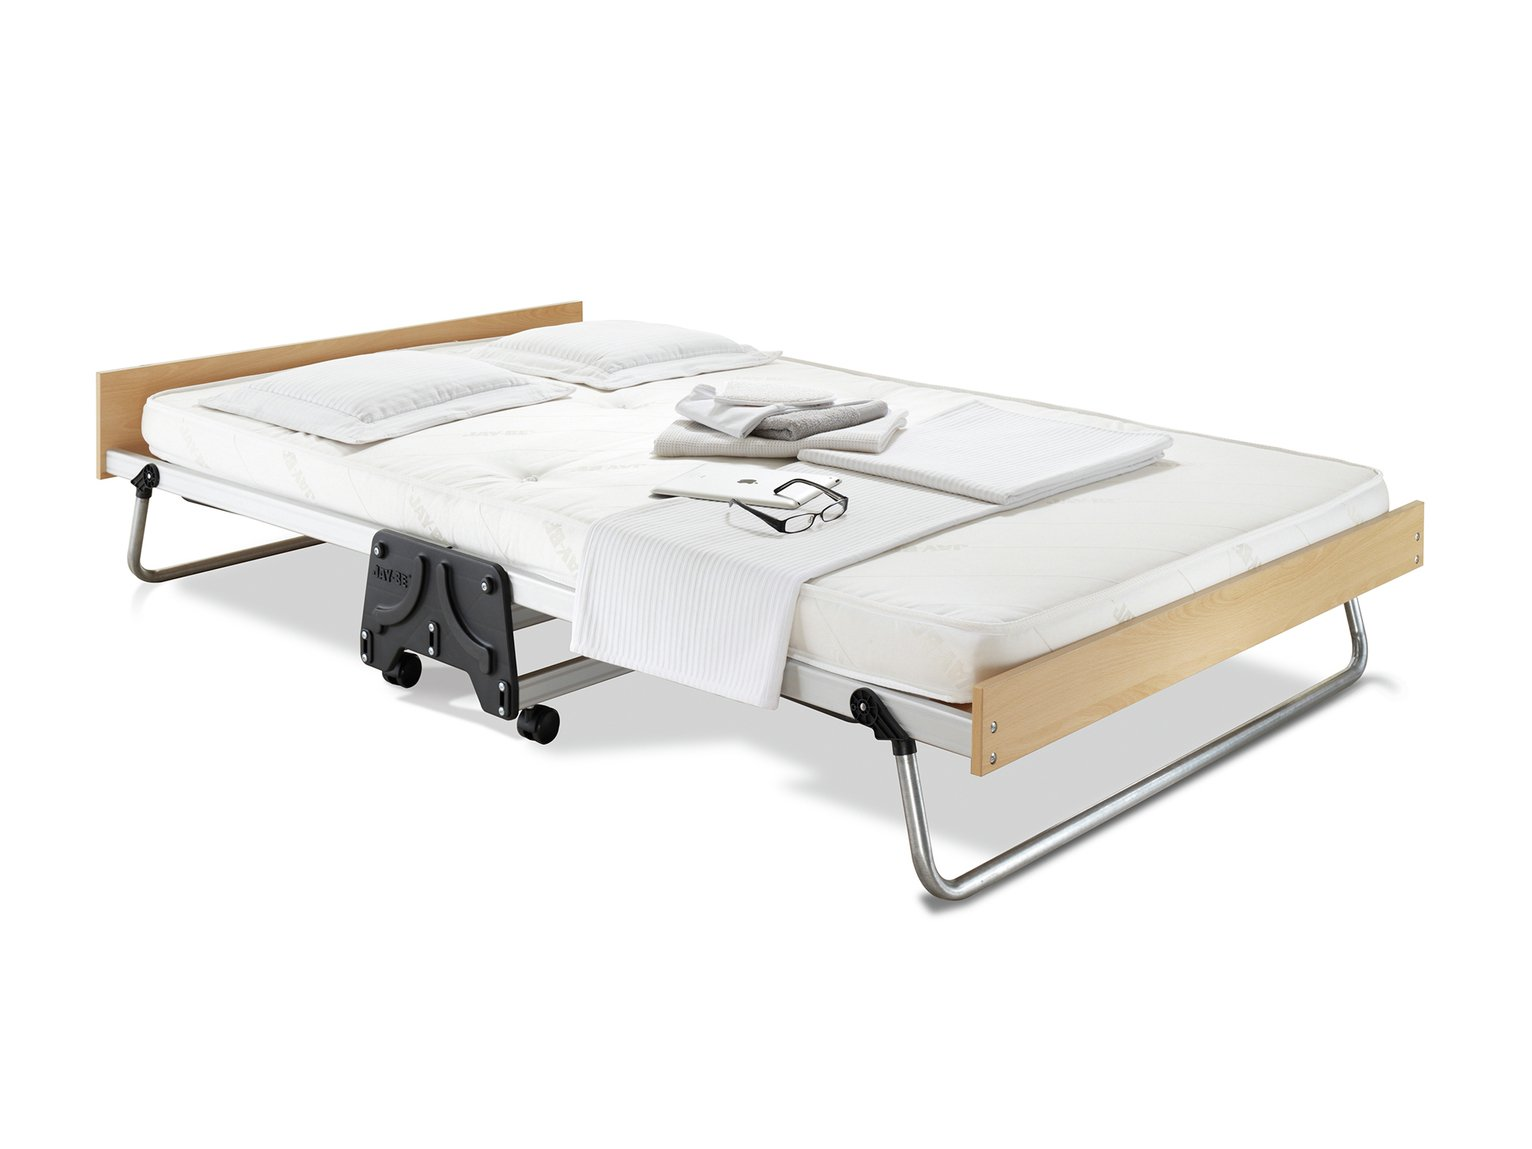 Folding Double Guest Bed With Mattress Ean 5016253000297 Jay Be J Bed Performance Folding Small Double